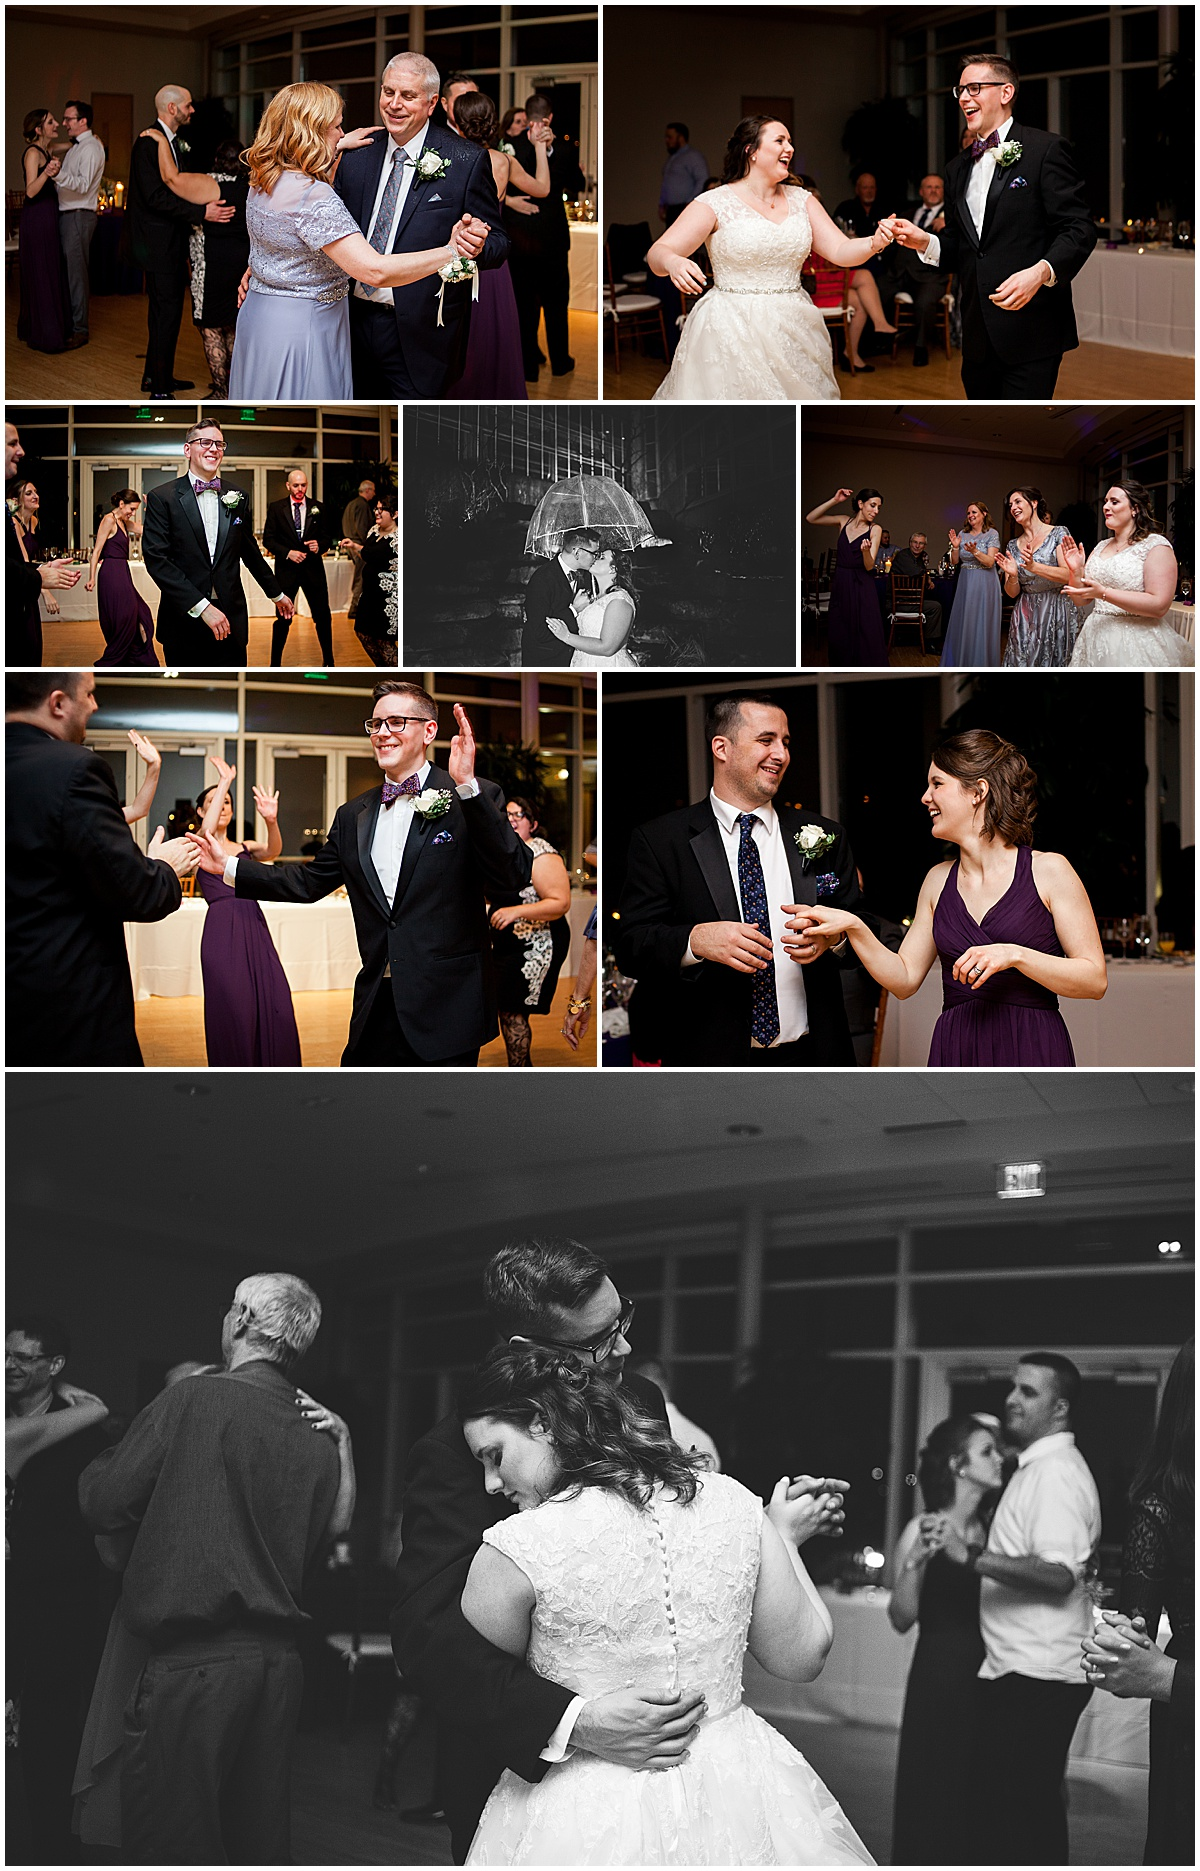 wedding dancing and reception at phipps conservatory pittsburgh